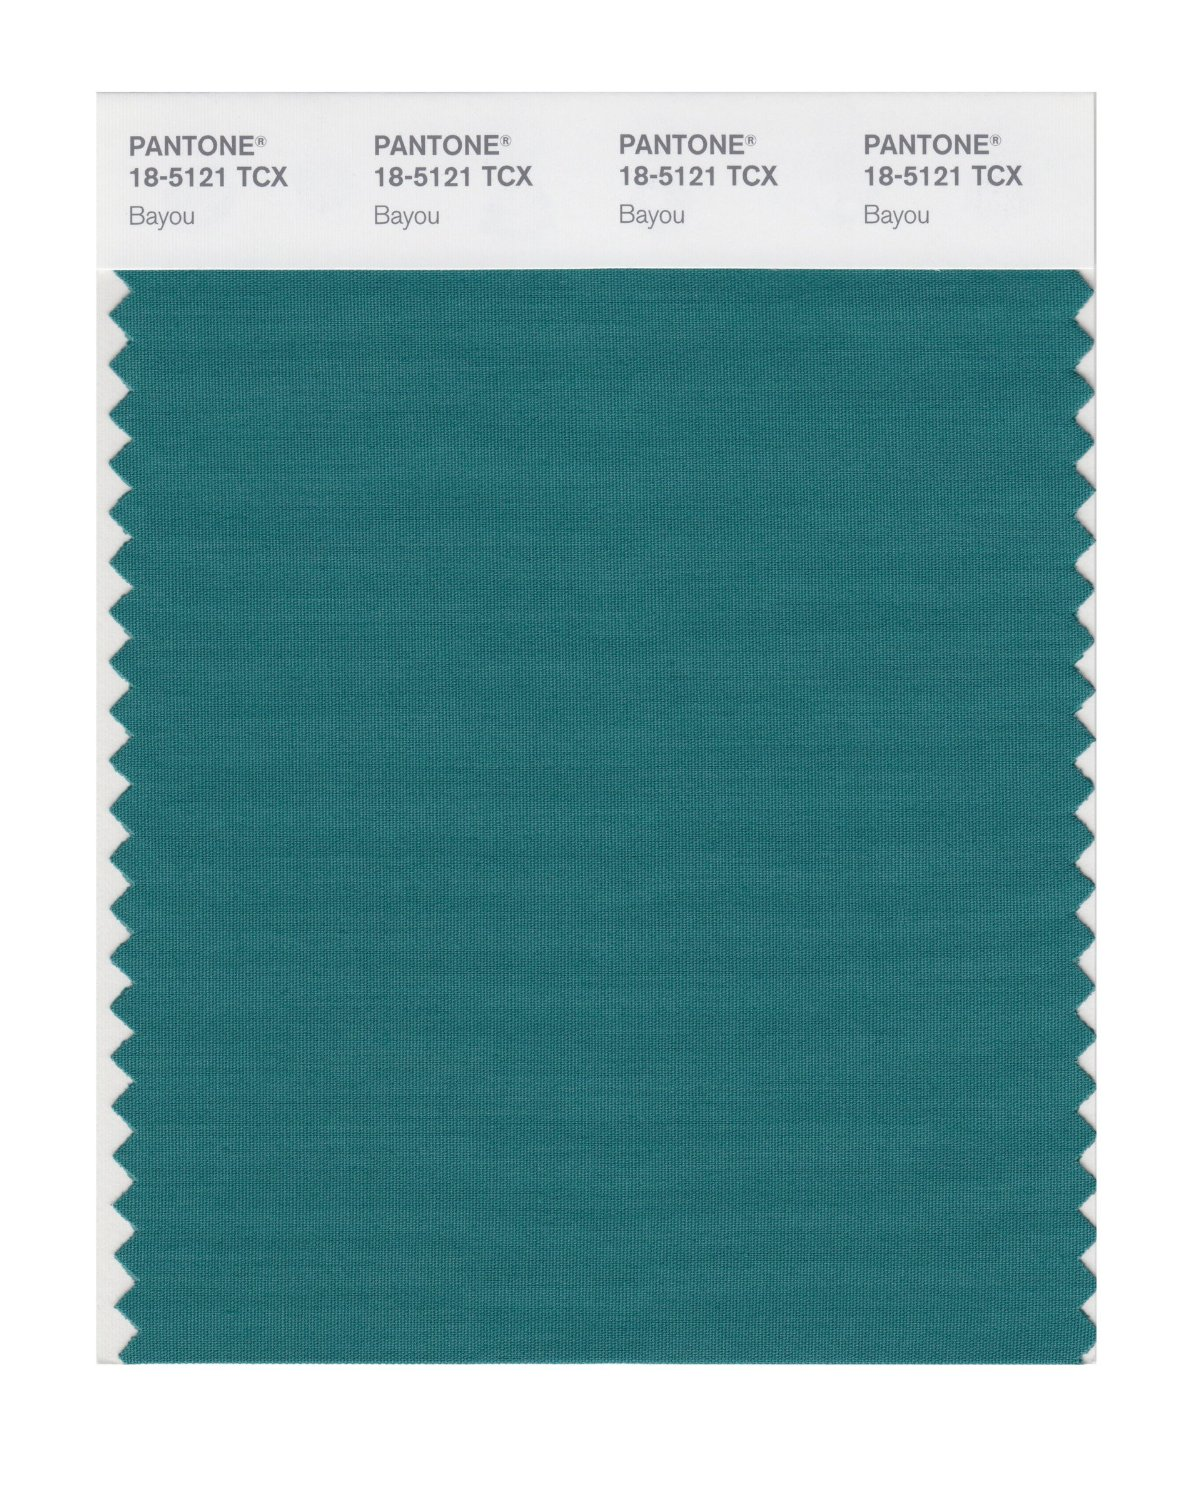 Pantone Smart Swatch 18-5121 Bayou